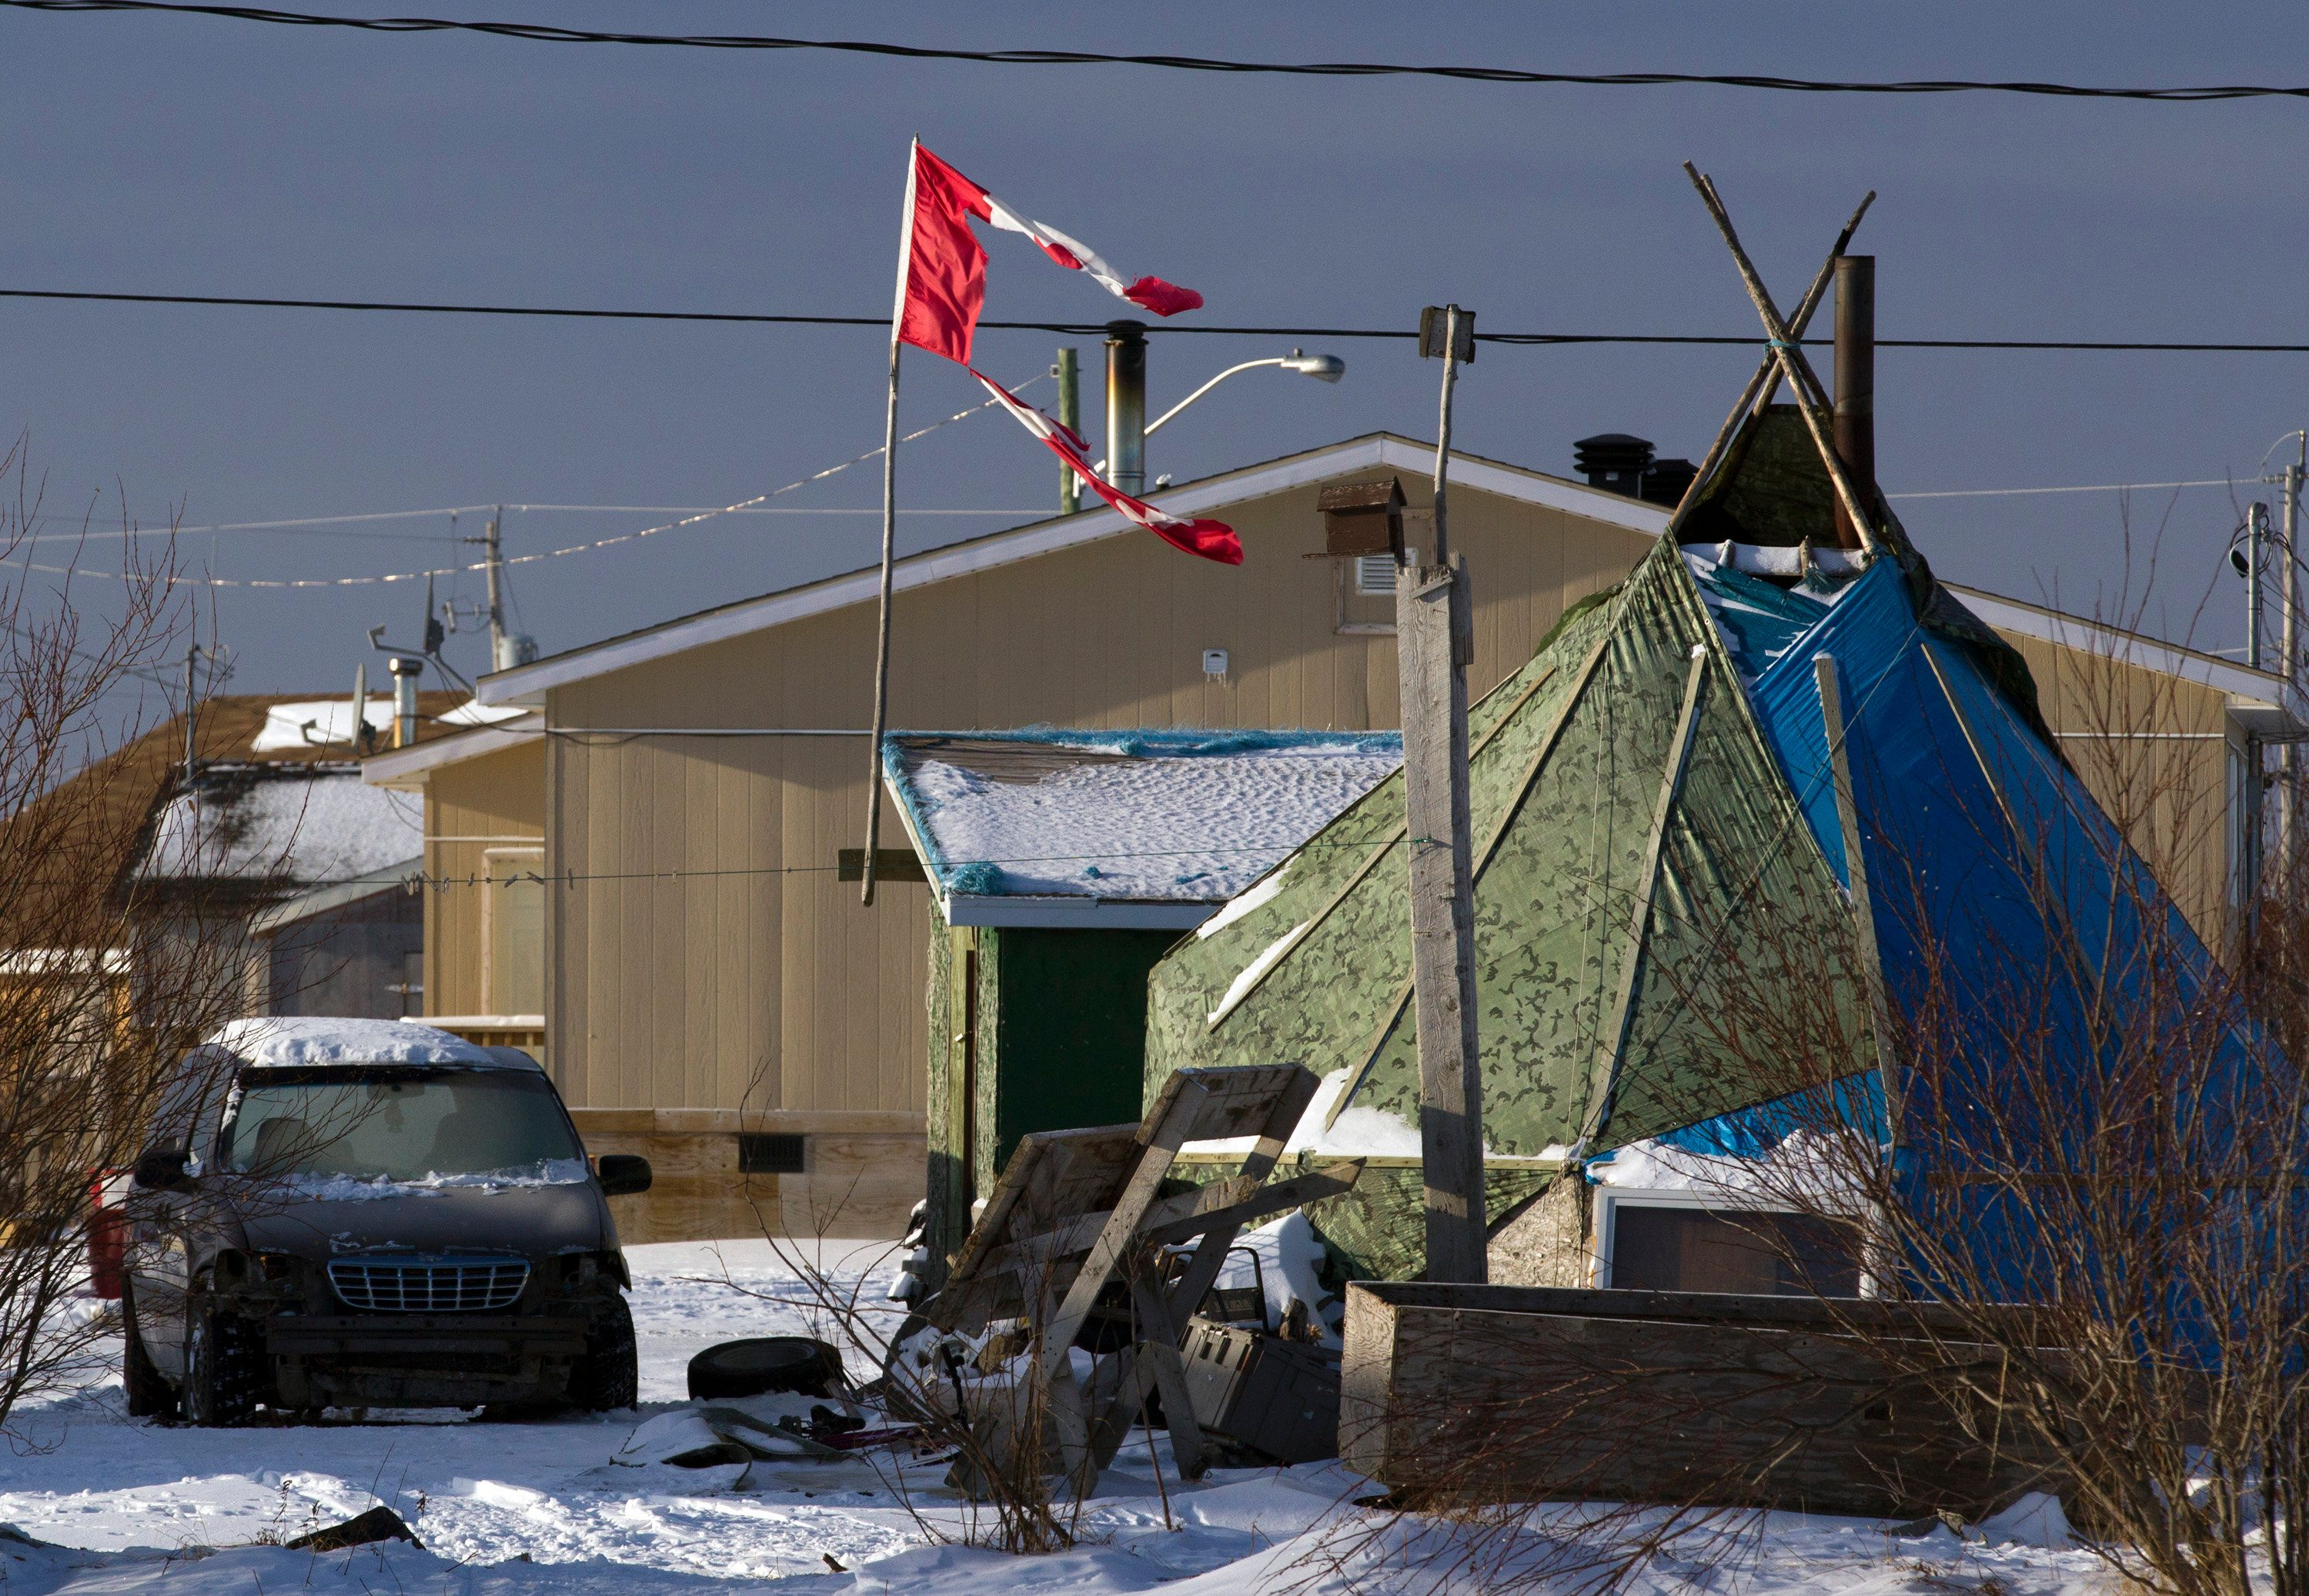 A tattered Canadian flag flies over a teepee in Attawapiskat, Ontario, December 17, 2011. About 20 families will move into a temporary shelter on December 23 to escape the housing crisis at the aboriginal reserve of Attawapiskat where many households live without running water or sanitary facilities, according to local media.    REUTERS/Frank Gunn/Pool  (CANADA - Tags: SOCIETY)